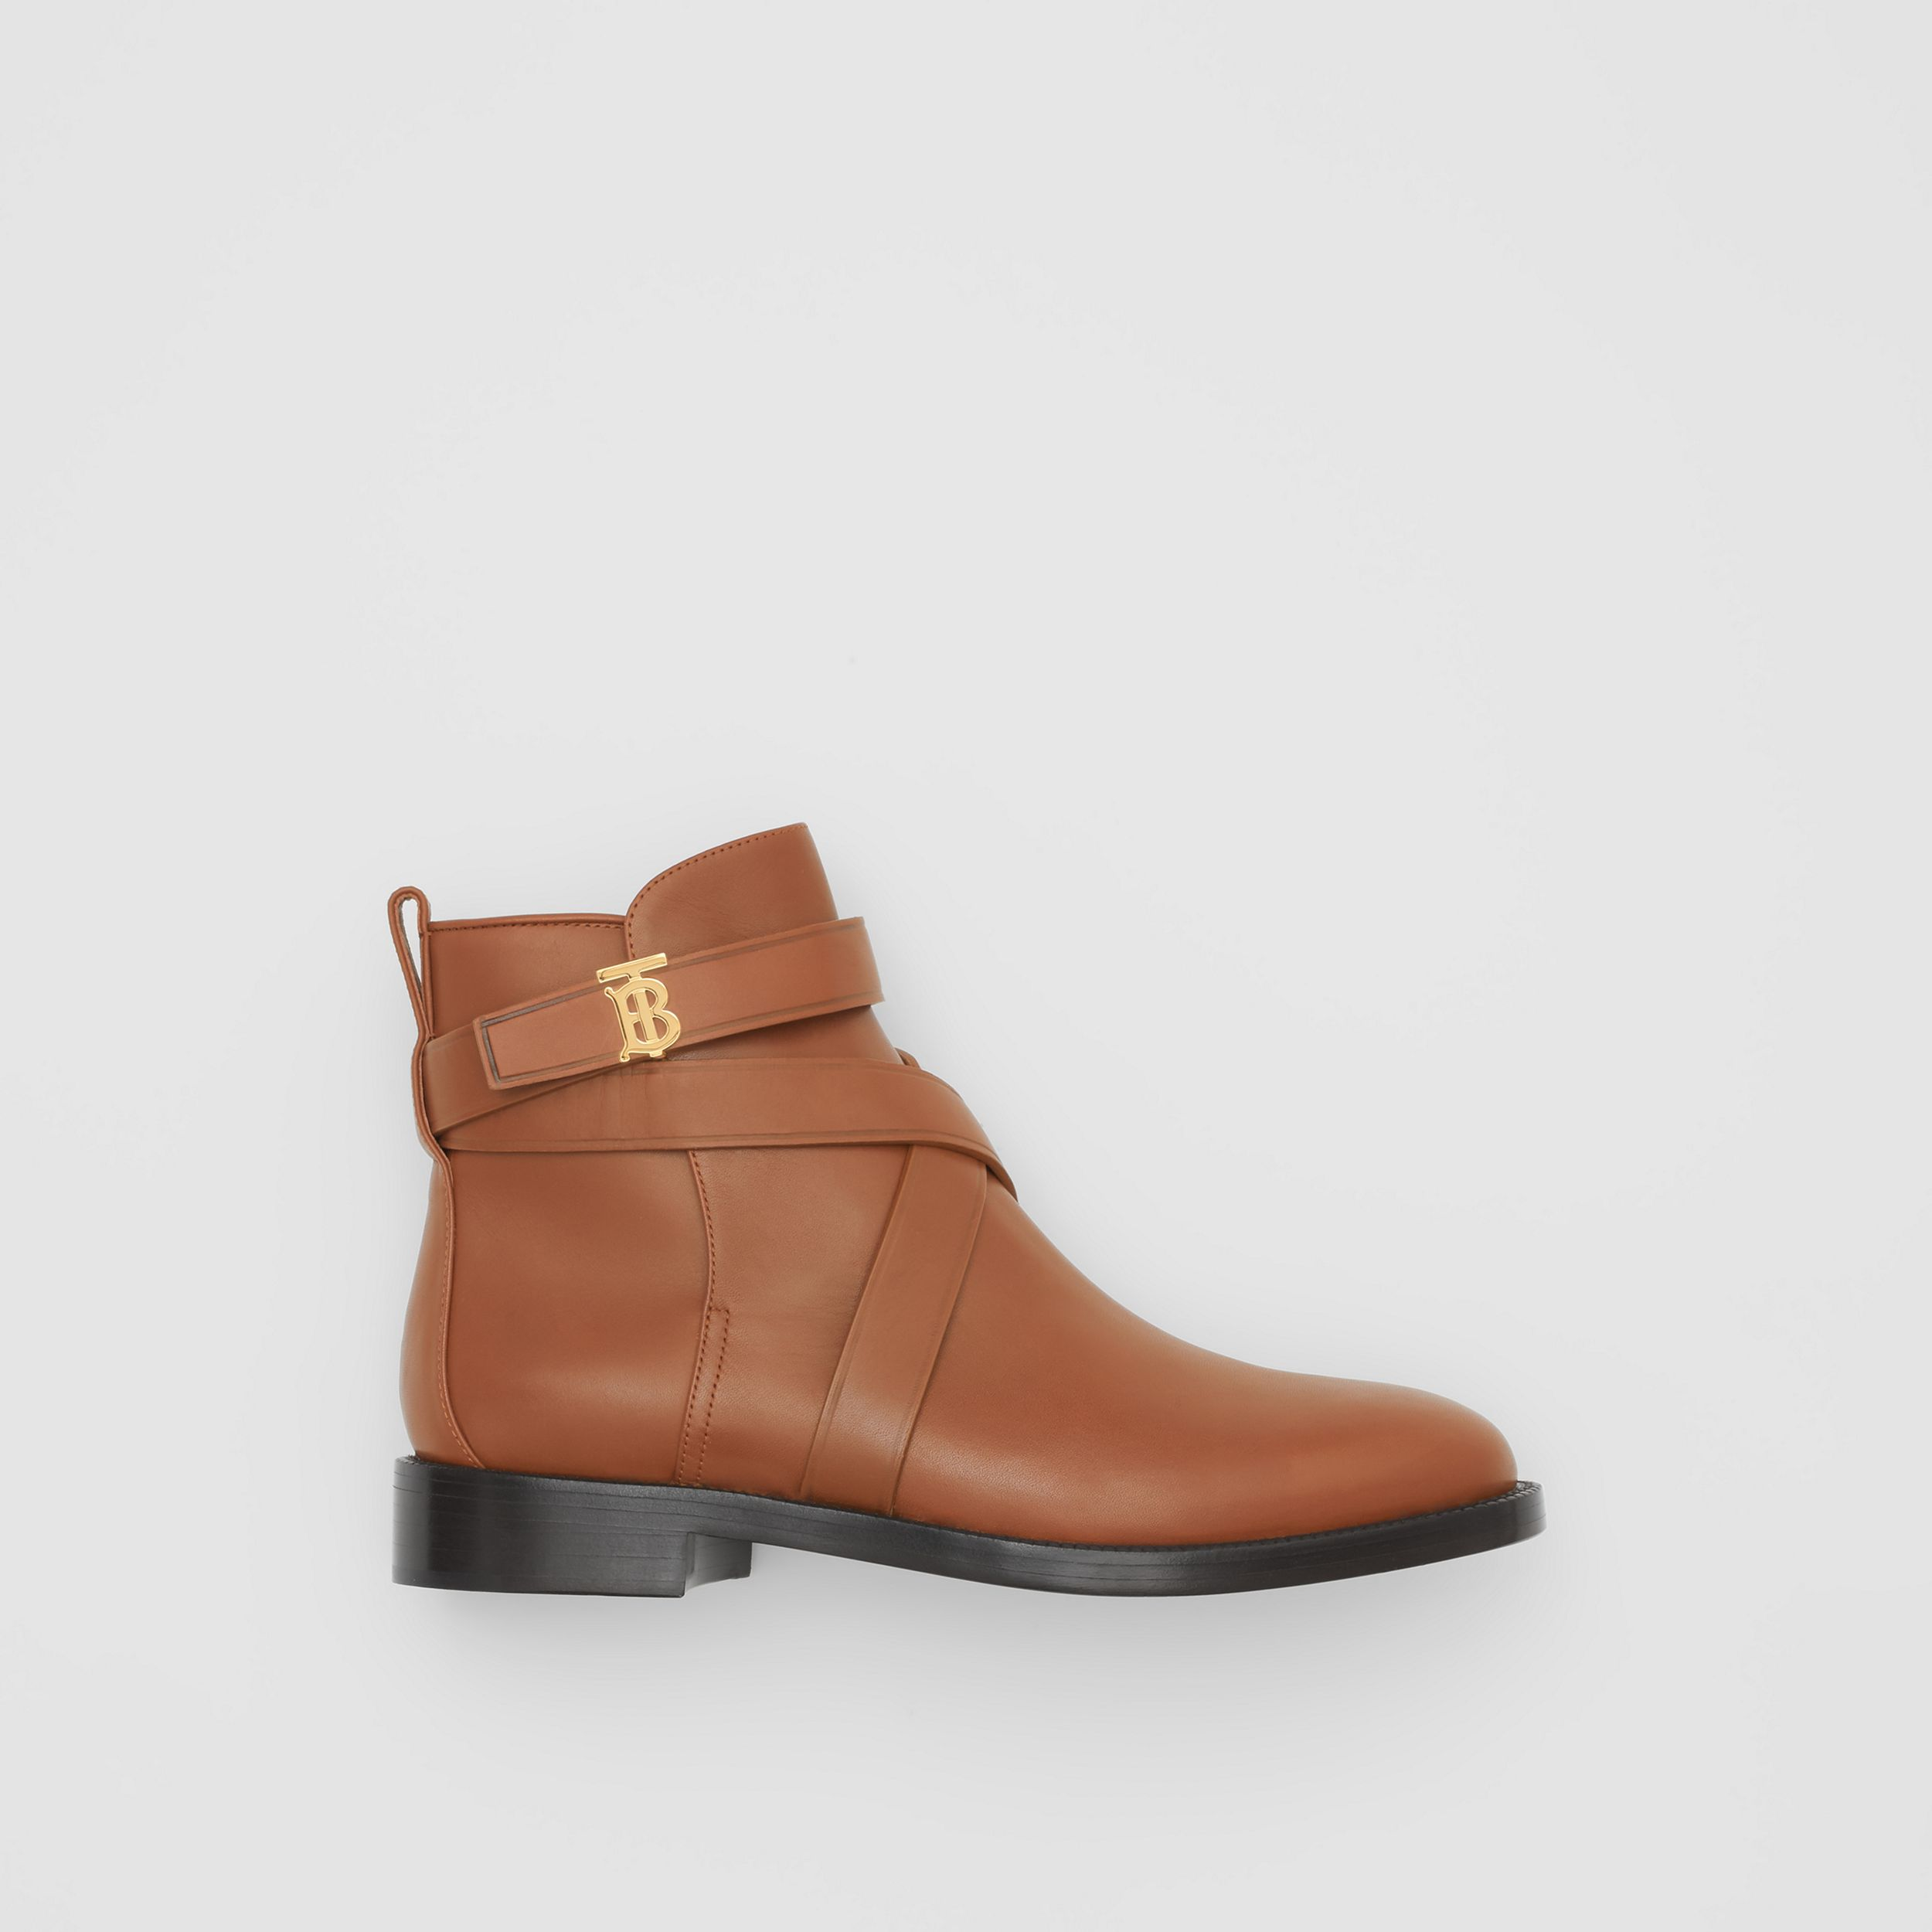 Monogram Motif Leather Ankle Boots in Tan - Women | Burberry Canada - 1